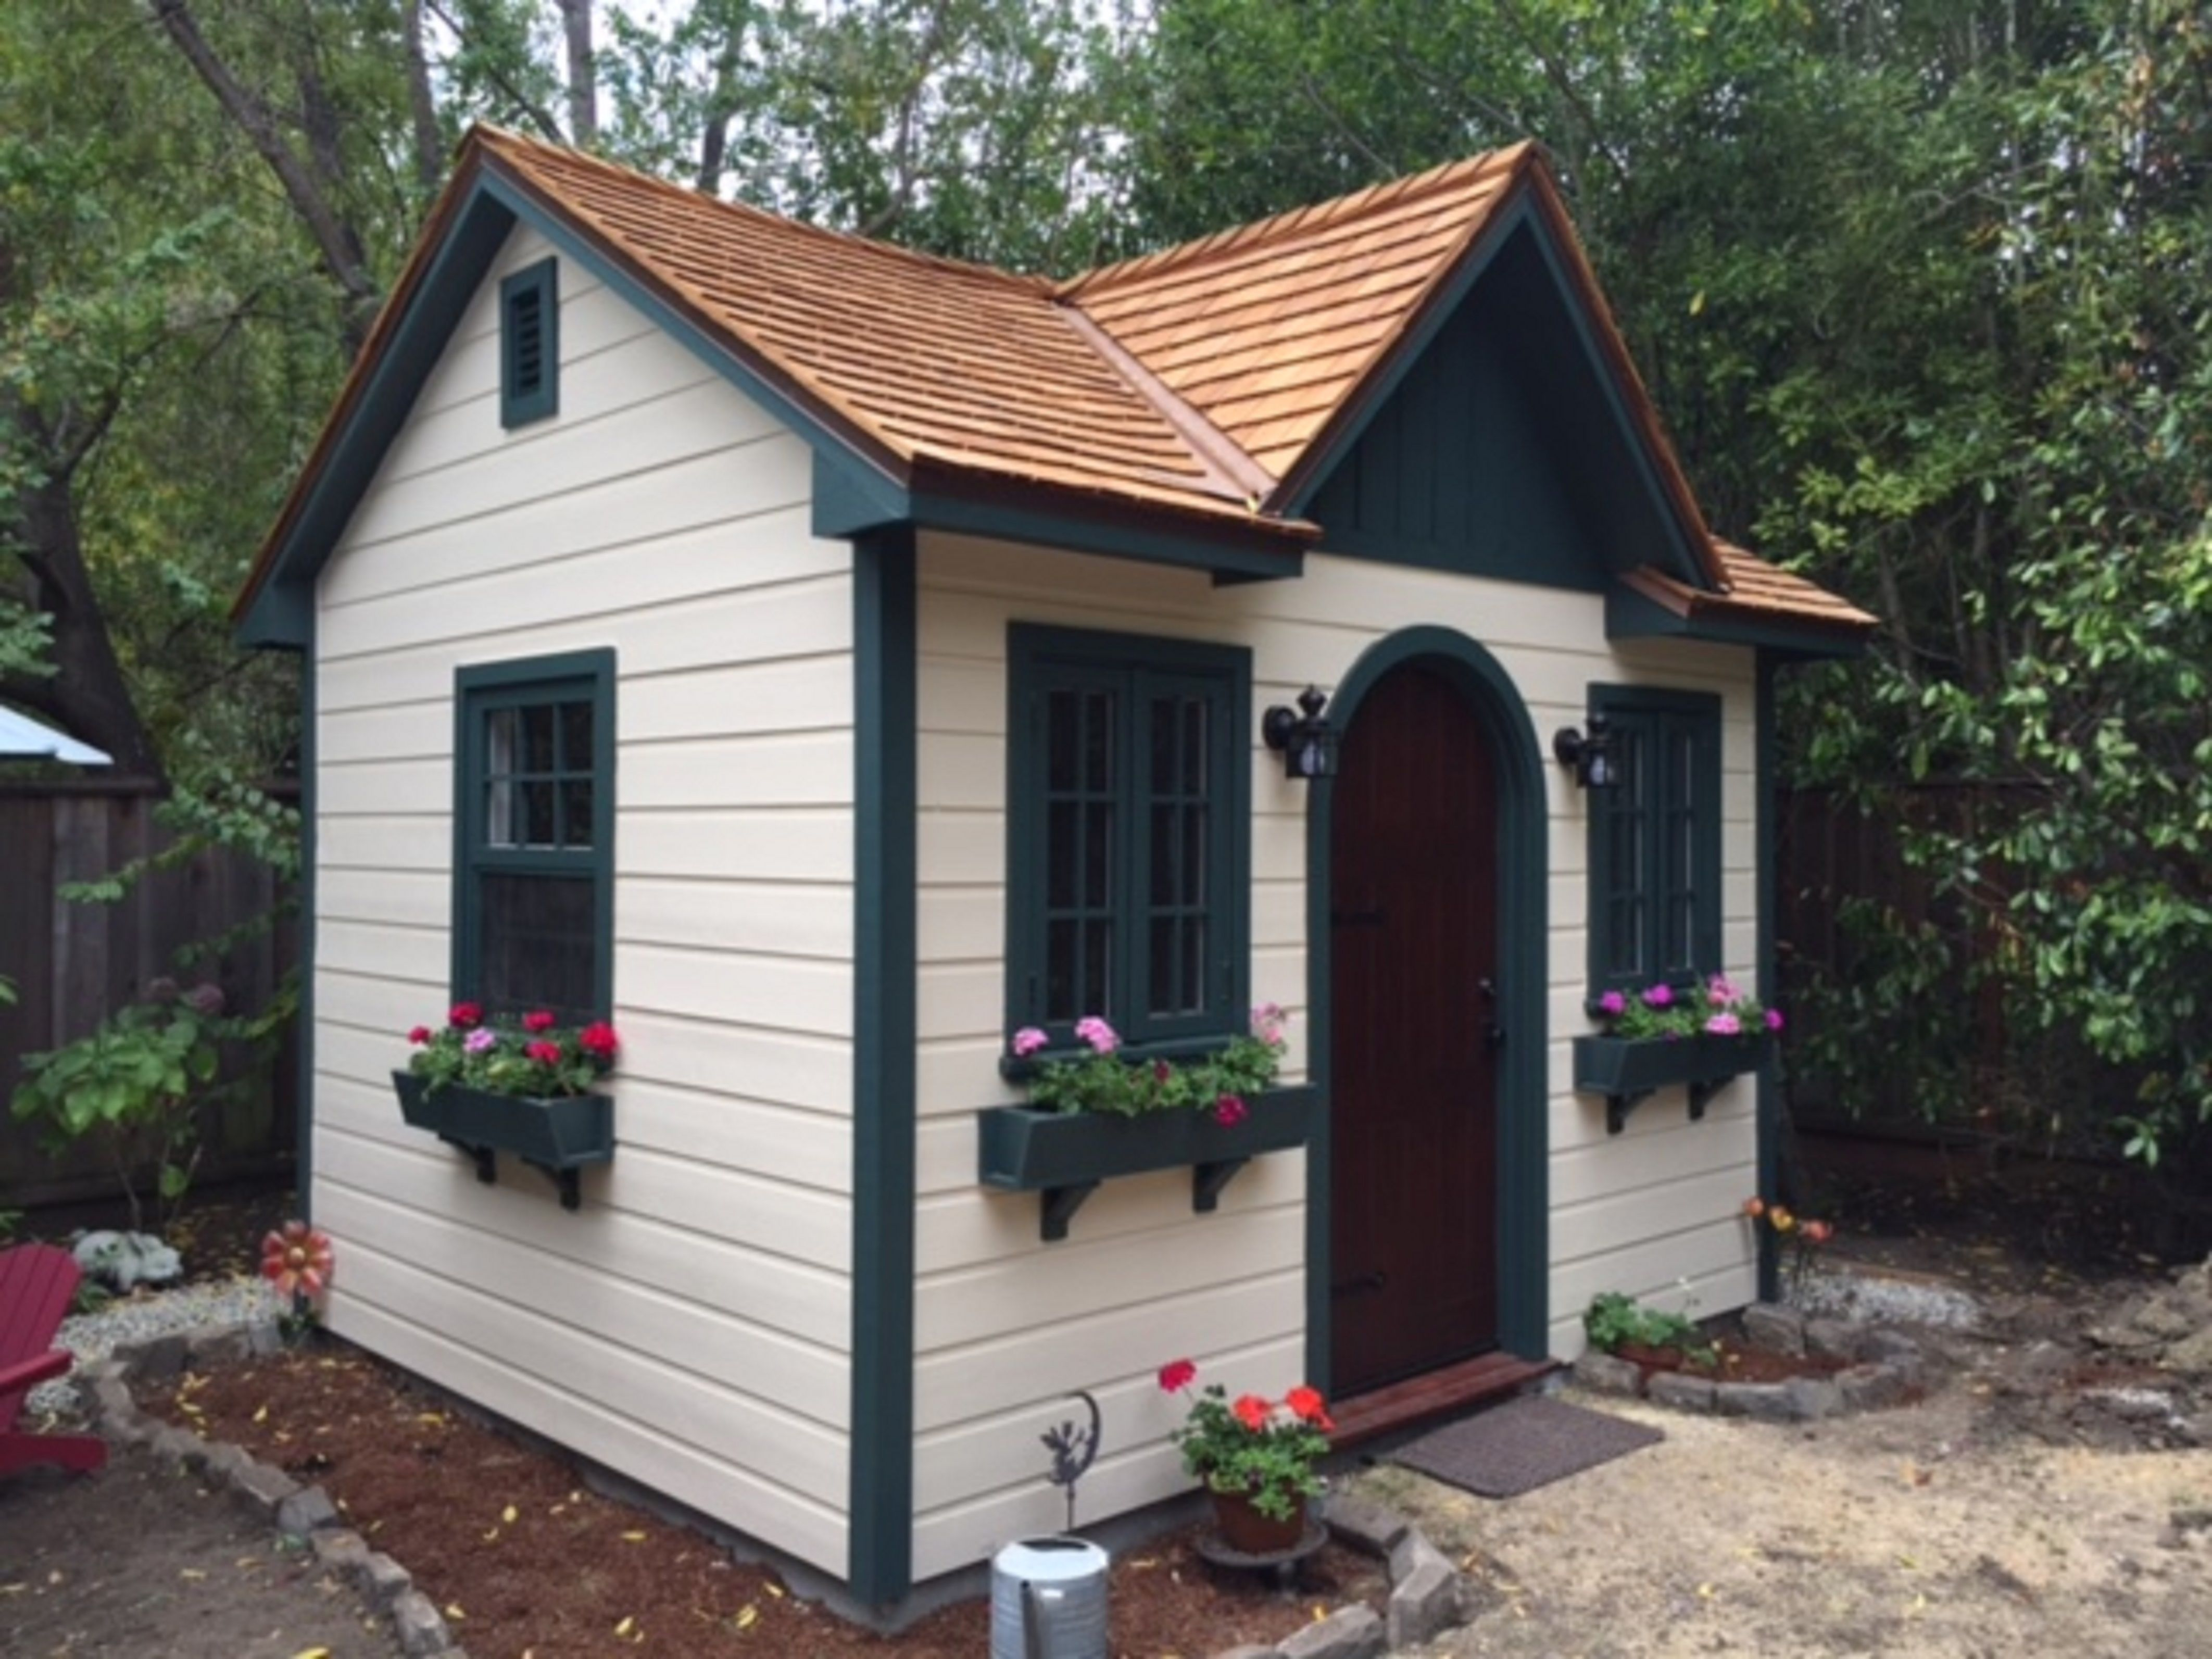 Palmerston Shed In Atherton California Garden Shed Interiors